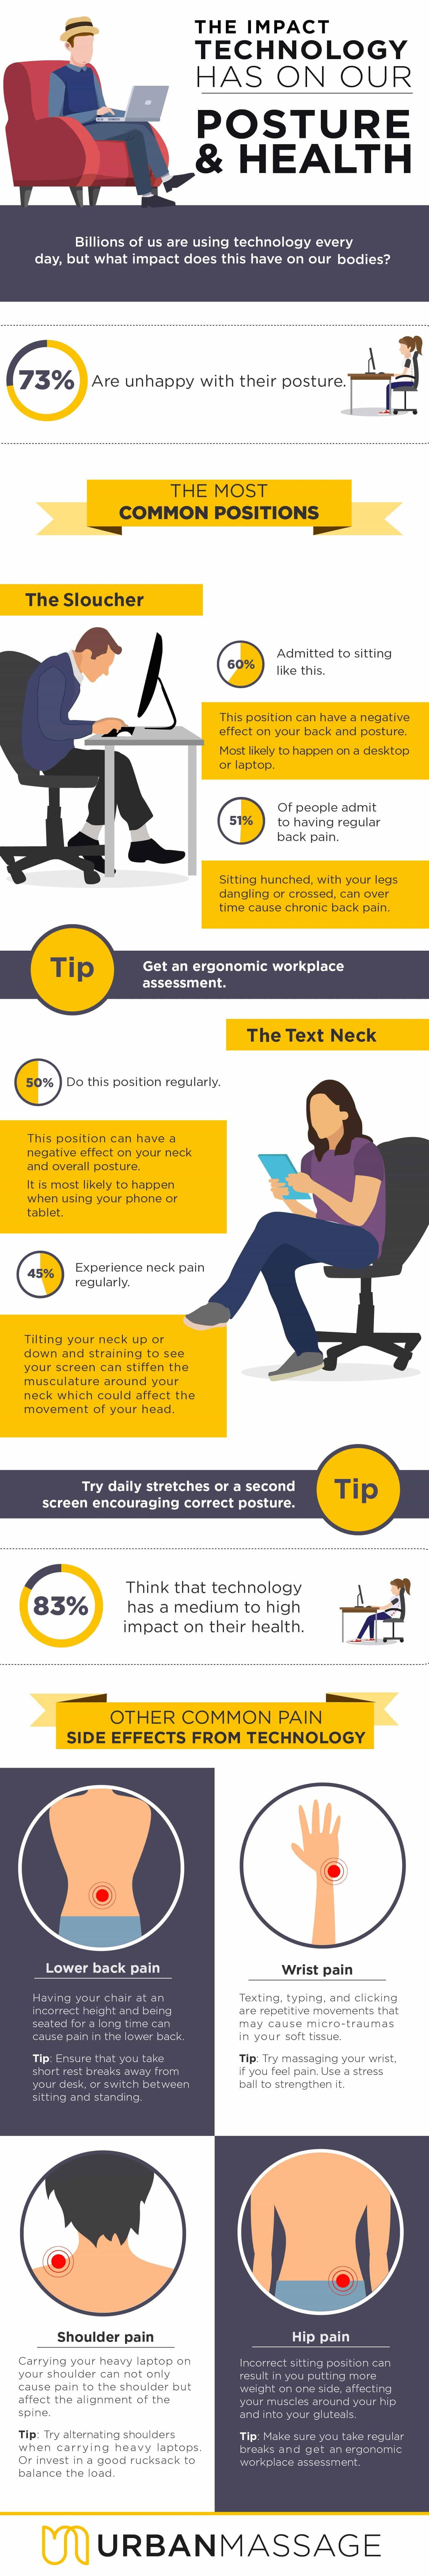 Urban Massage Infographic - A Staggering 73% of Britons Have Admitted They Were Unhappy With The Way They Sit